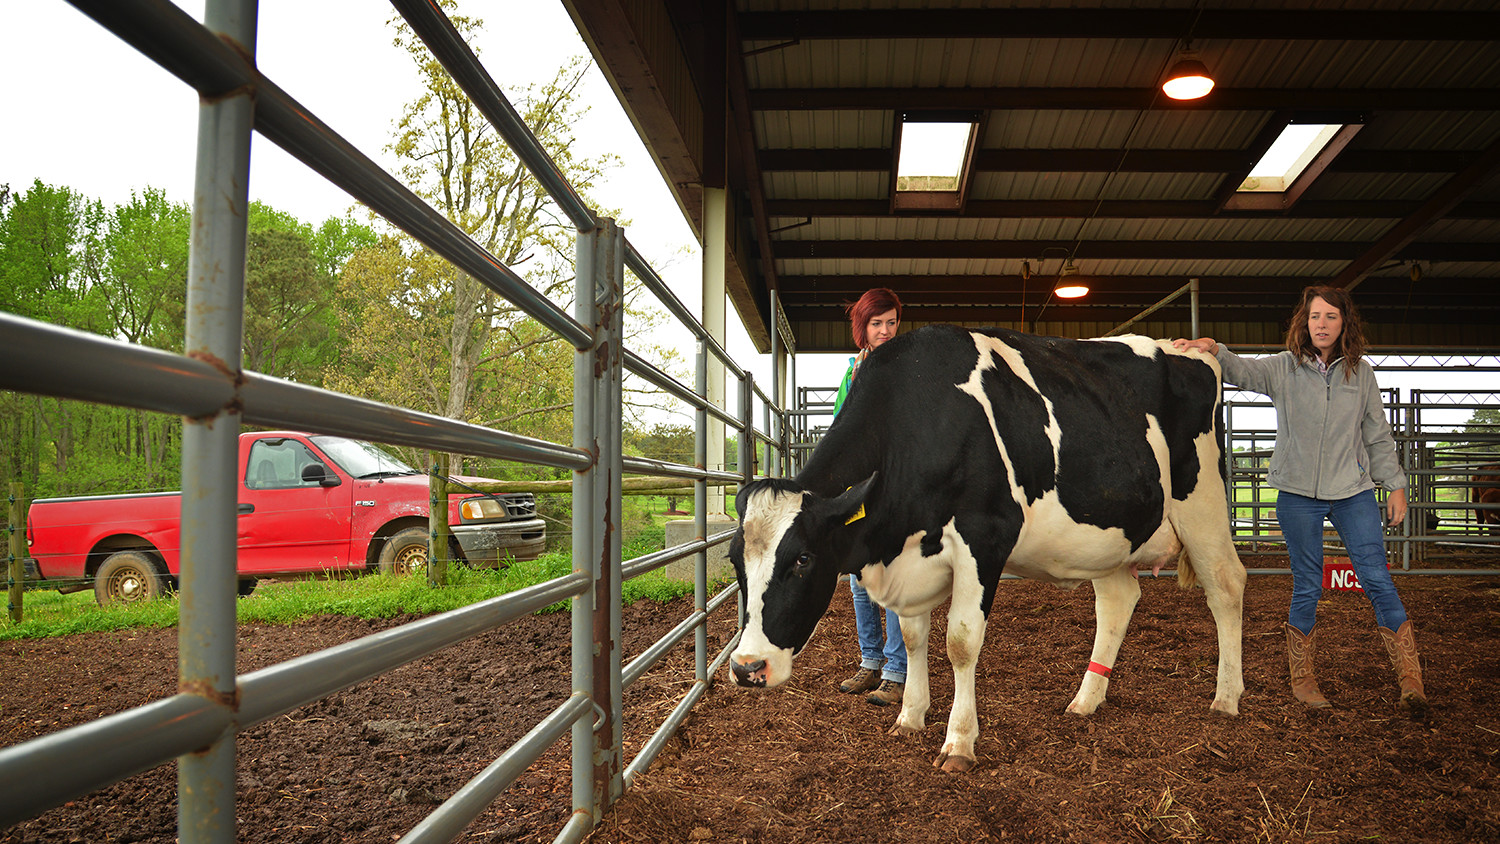 Two females with a dairy cow